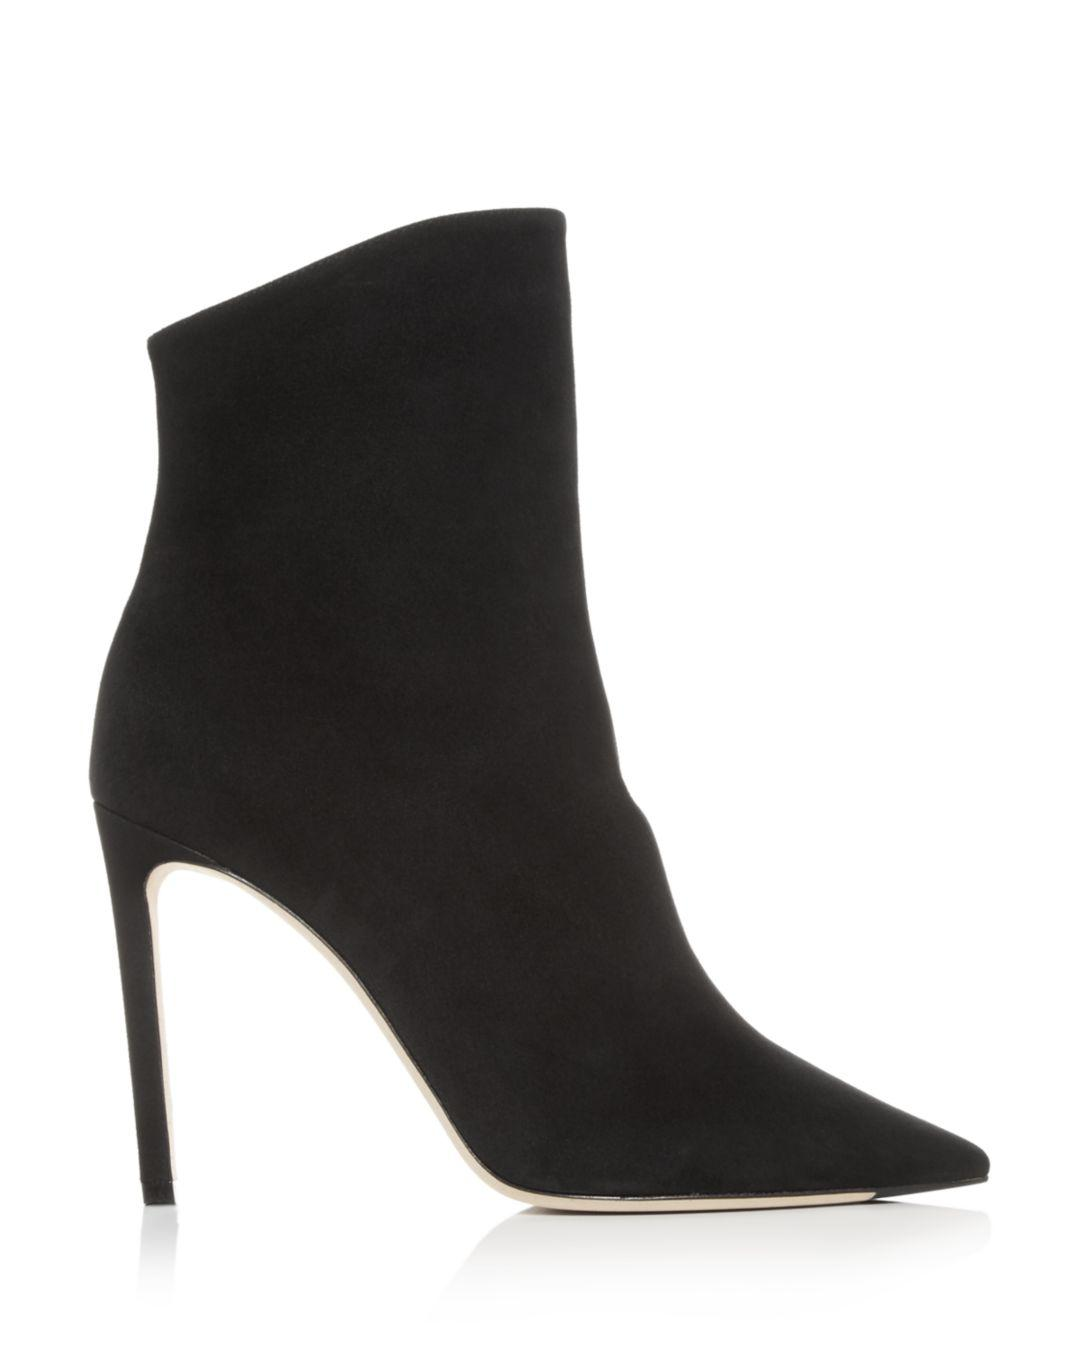 Jimmy Choo Suede Hurley 100 Boots in Black